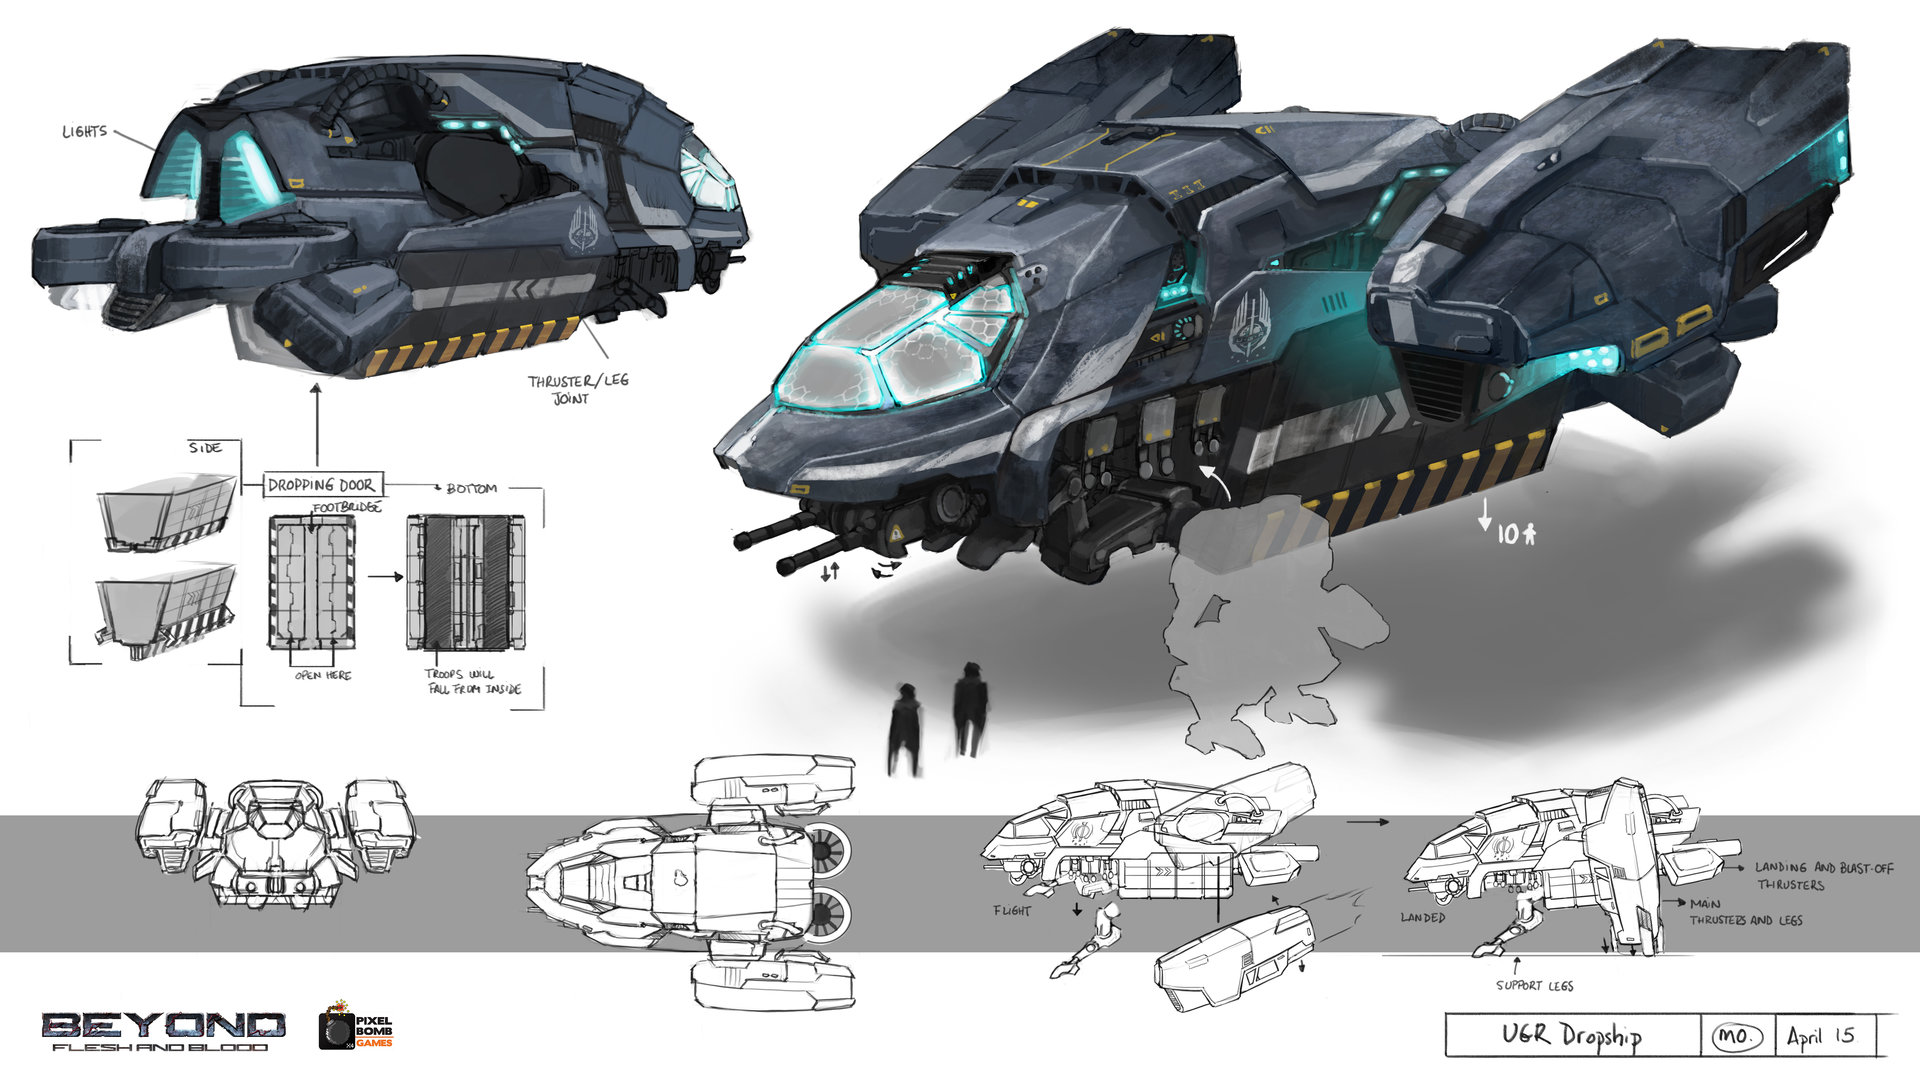 Marina ortega ugr dropship color